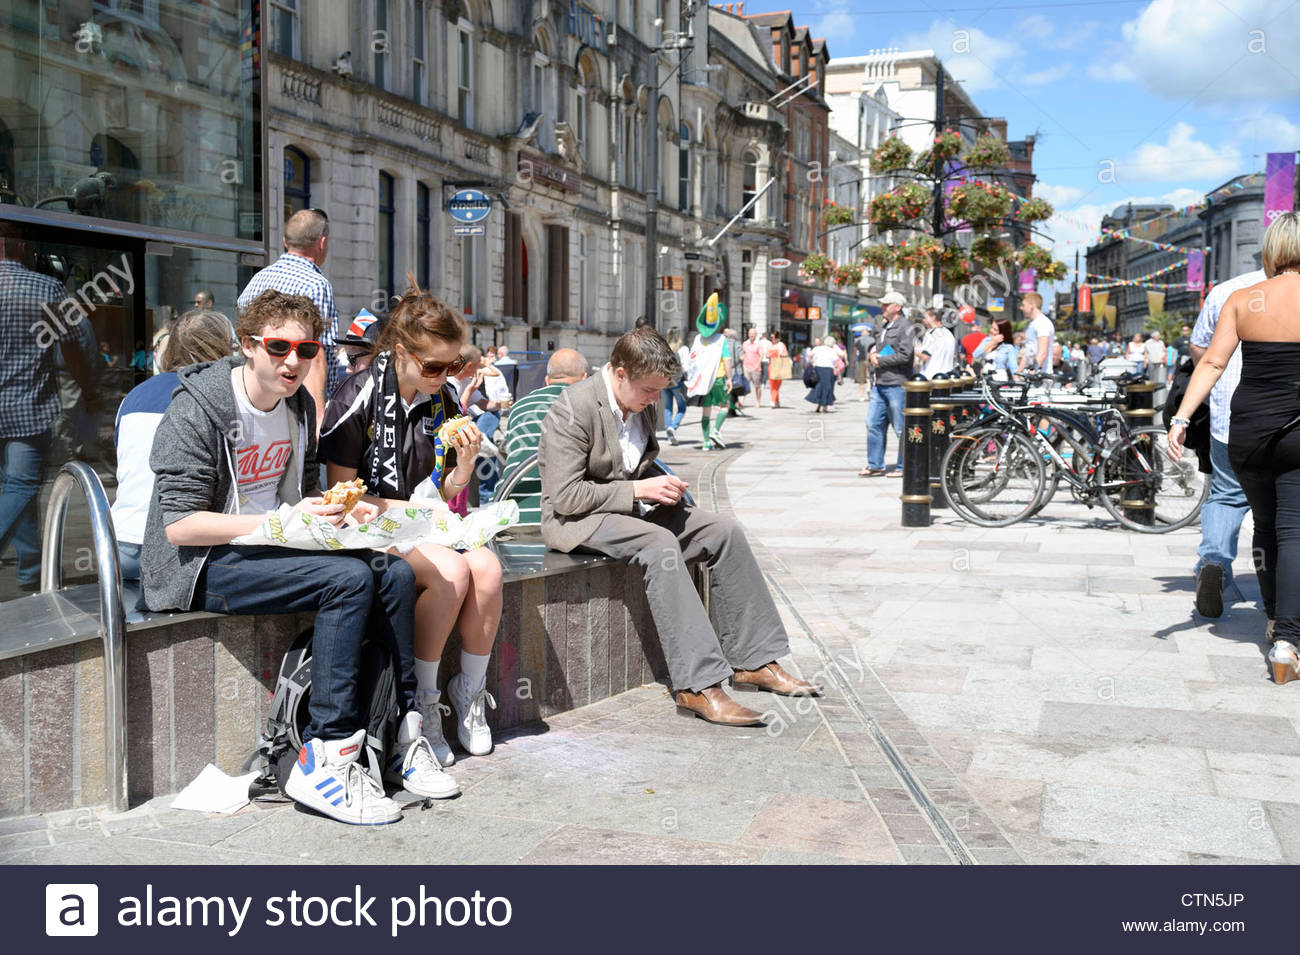 People eating lunch in the streets of Cardiff City Centre, South Wales, UK. - Stock Image